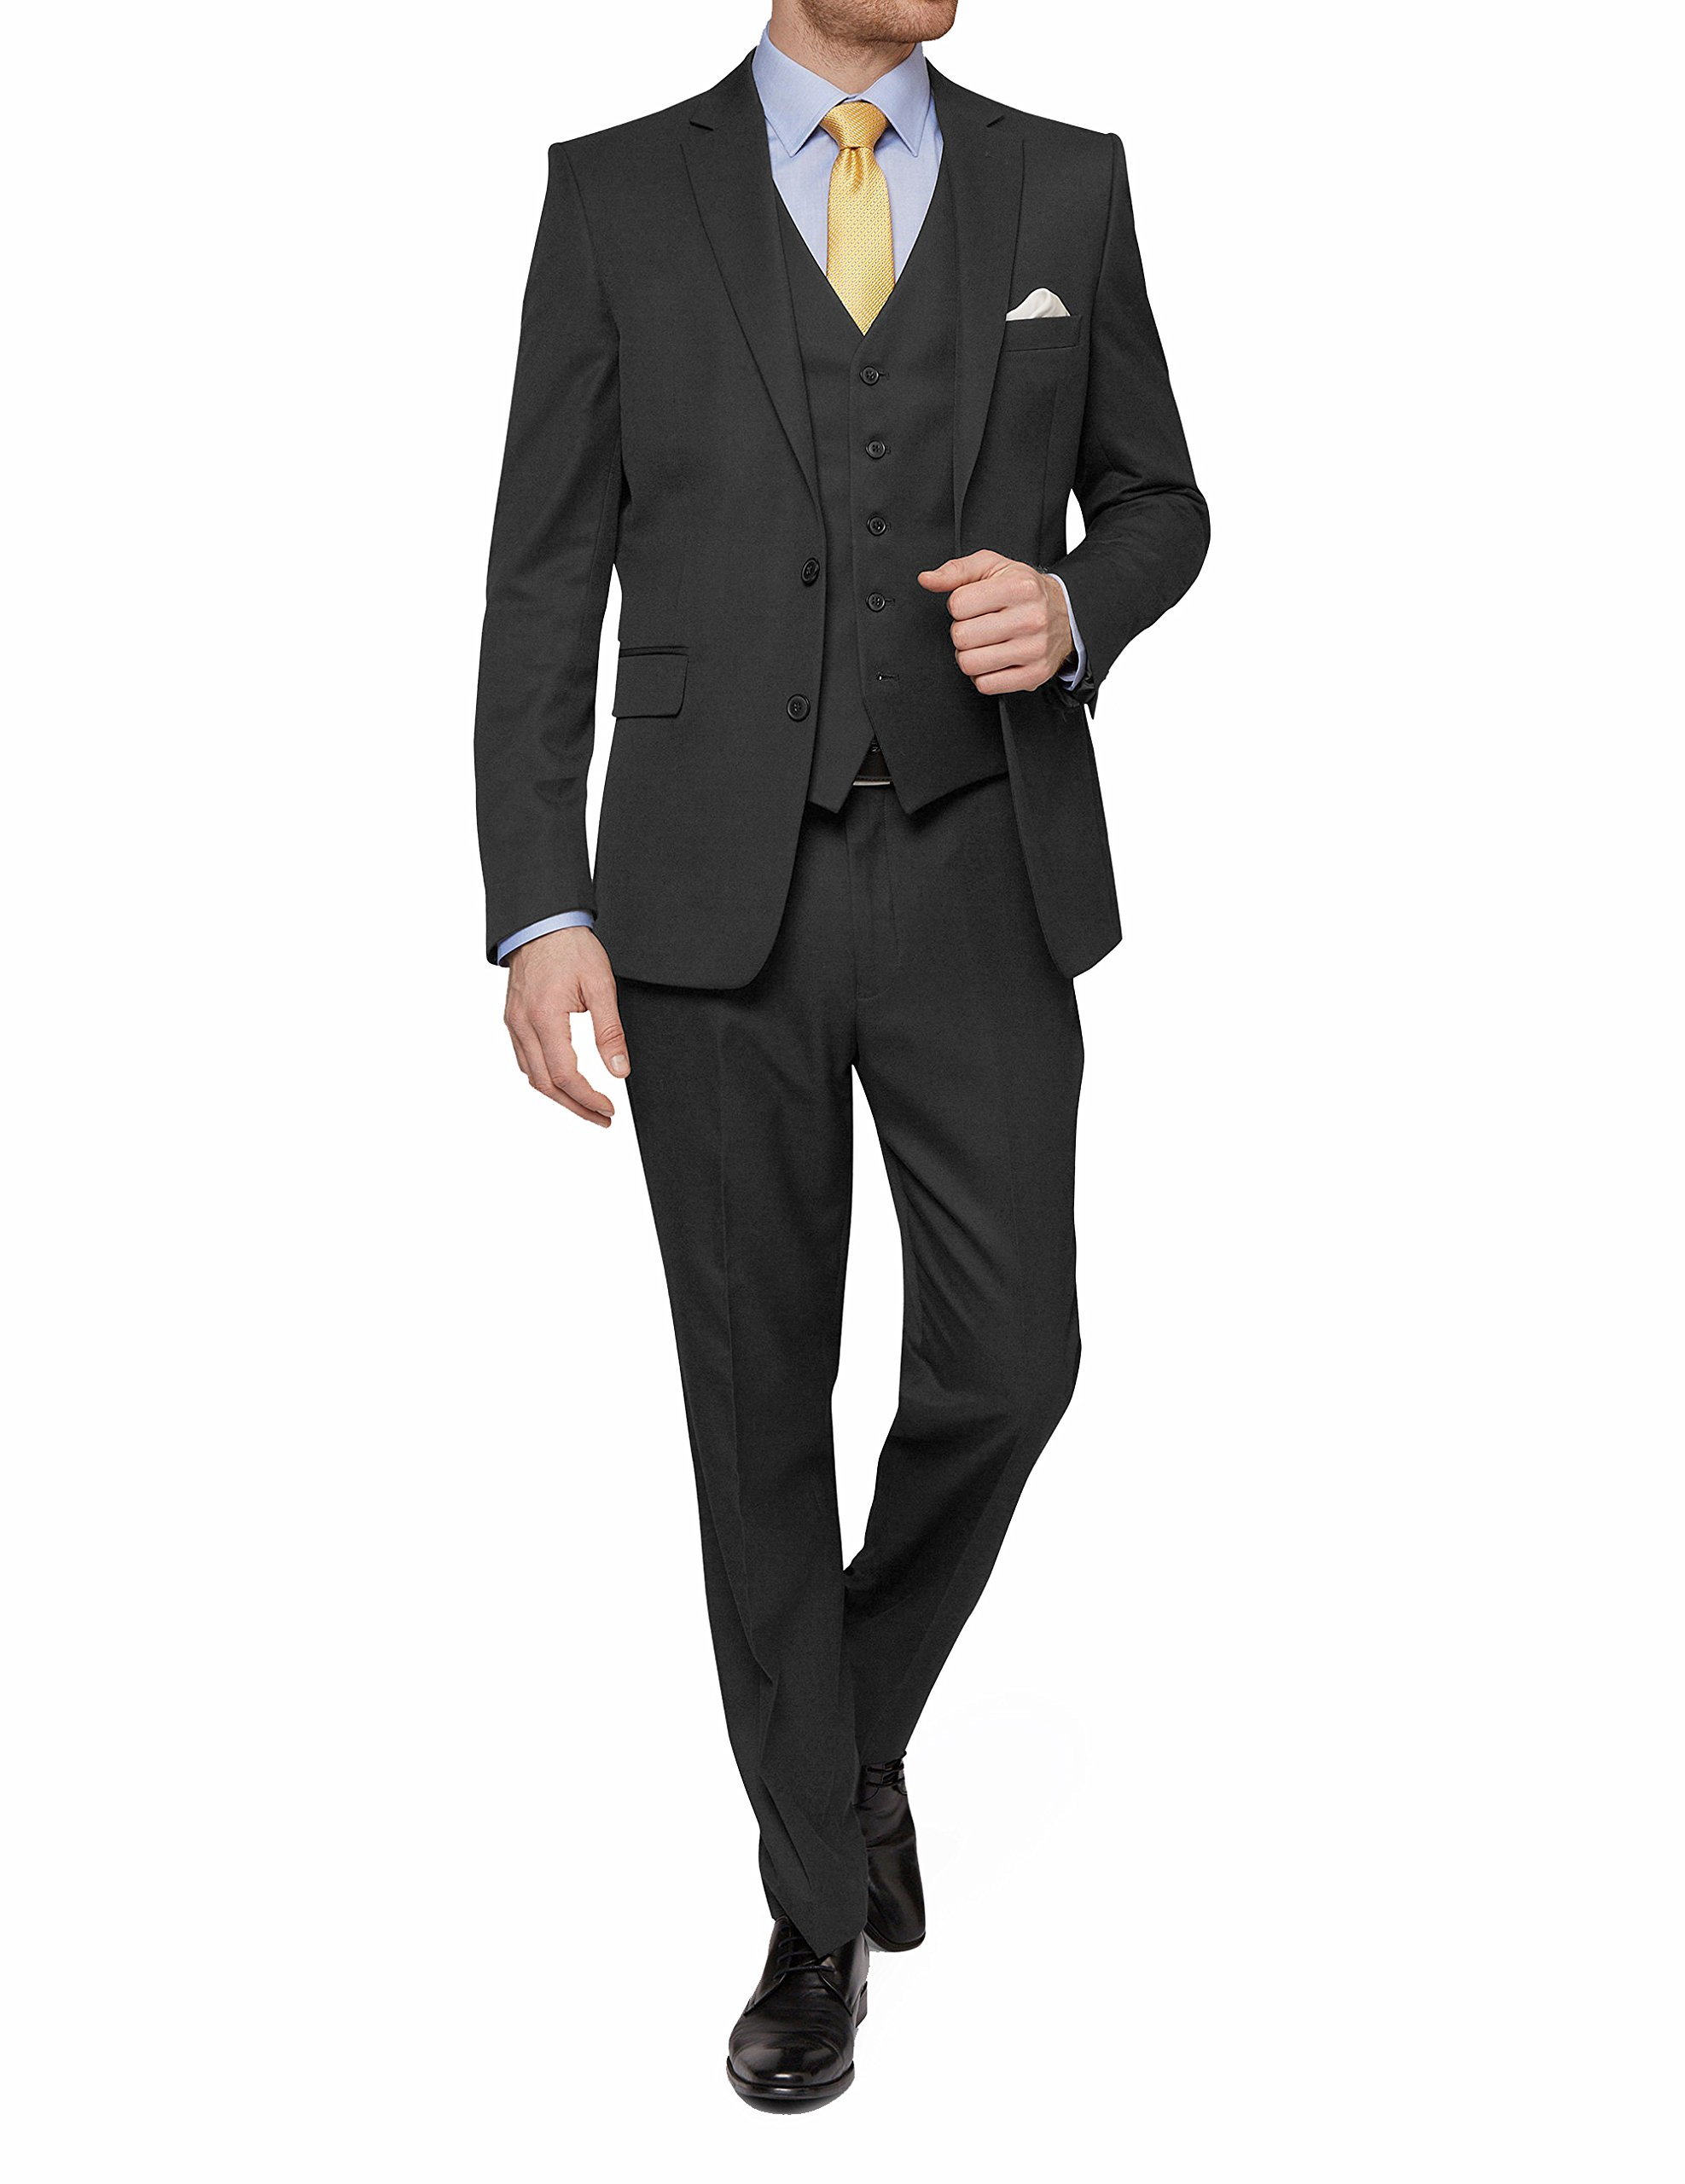 MDRN Uomo Mens Slim Fit 3 Piece Suit, Charcoal, Size 36Sx30W